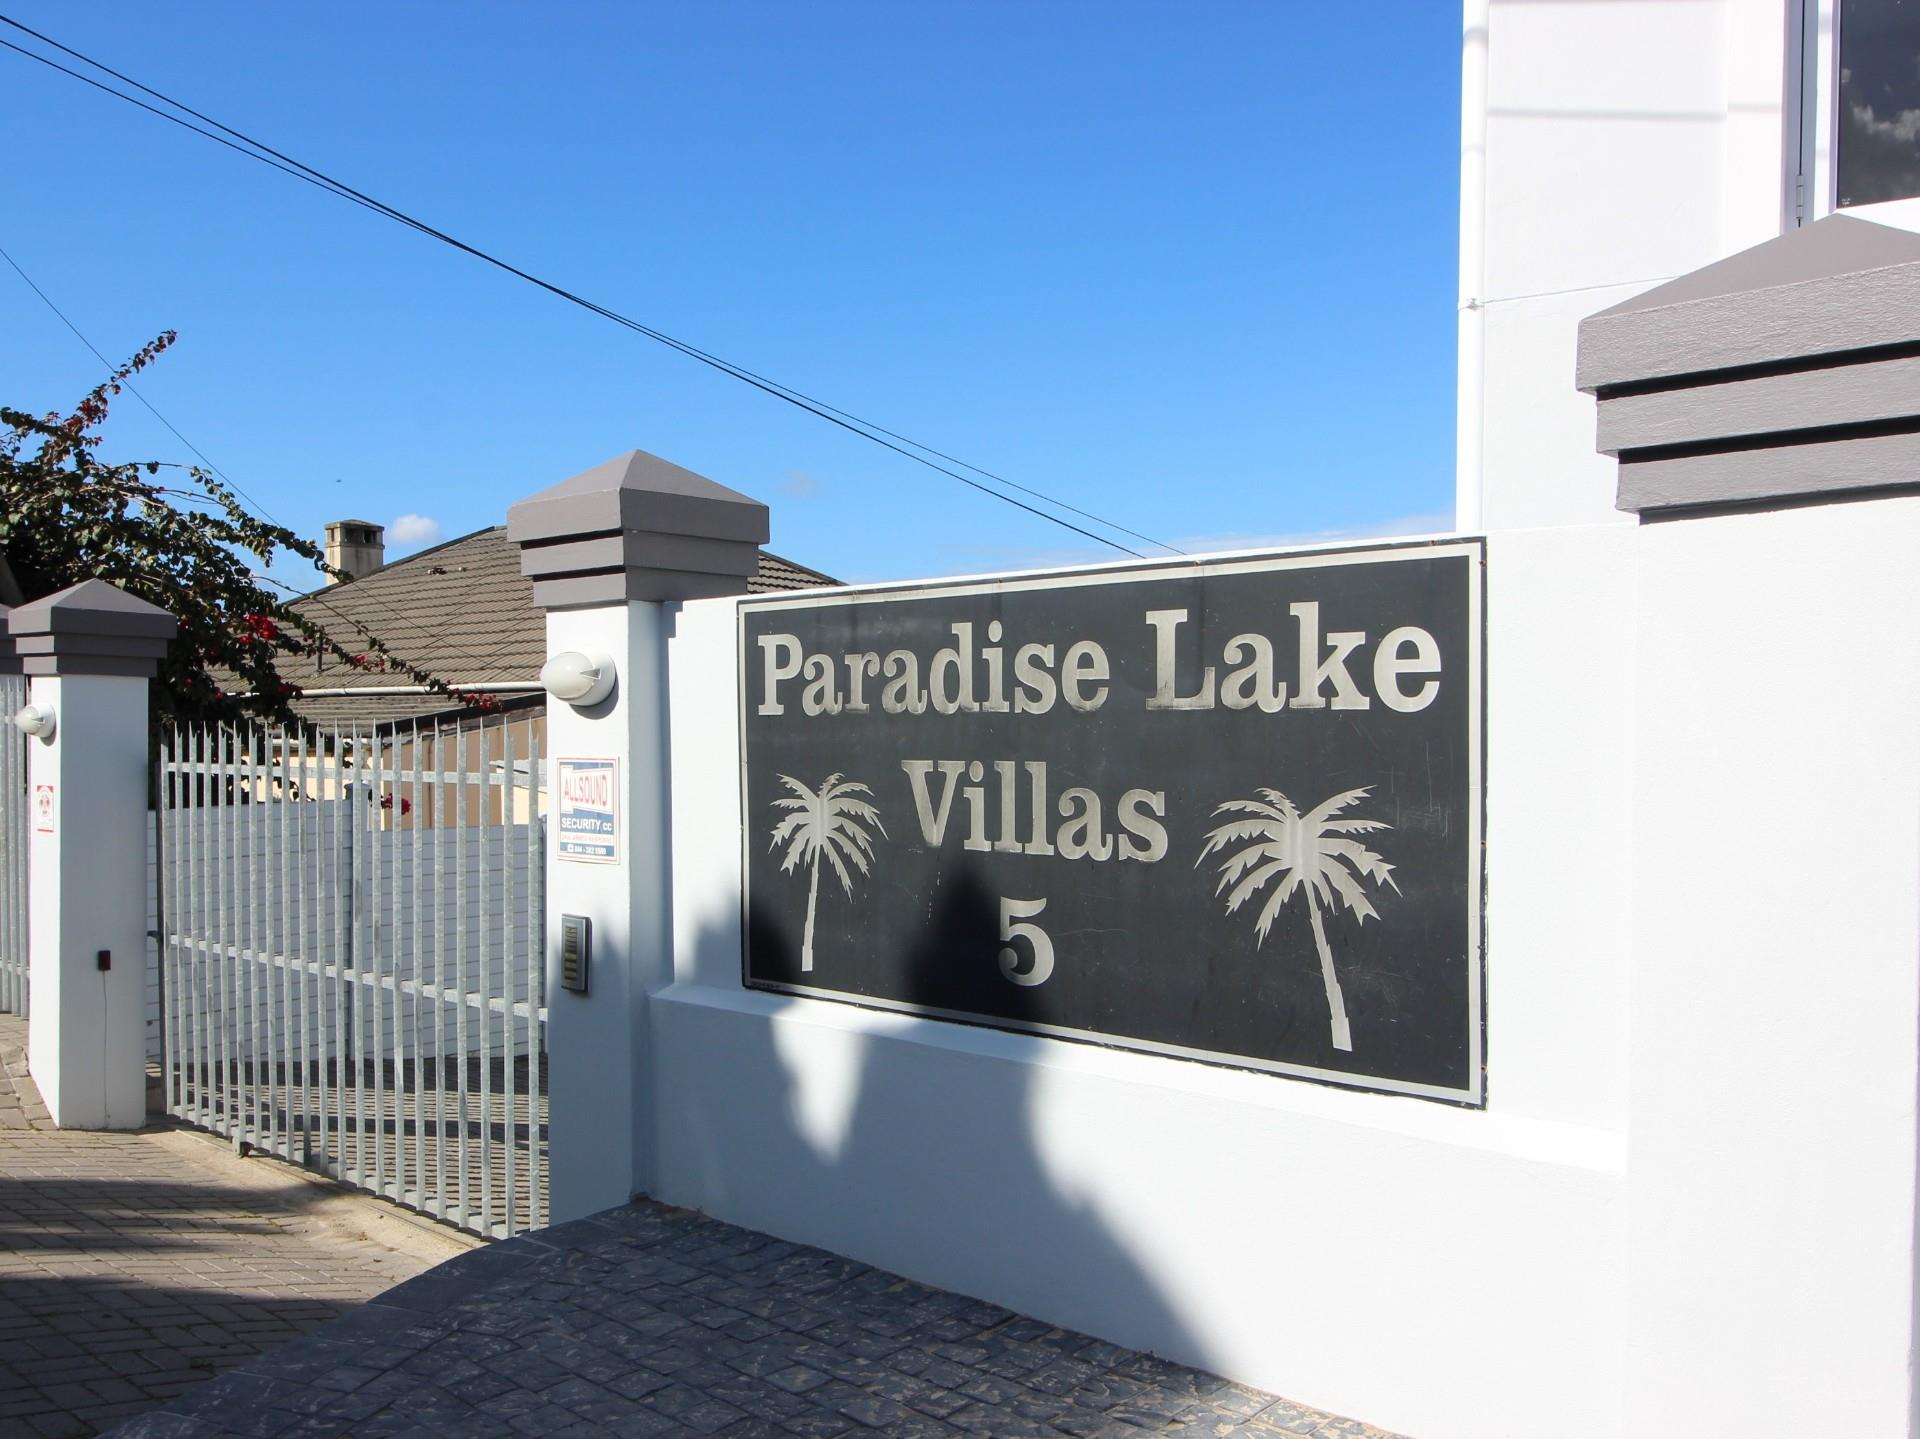 3 Bedroom House For Sale in Paradise